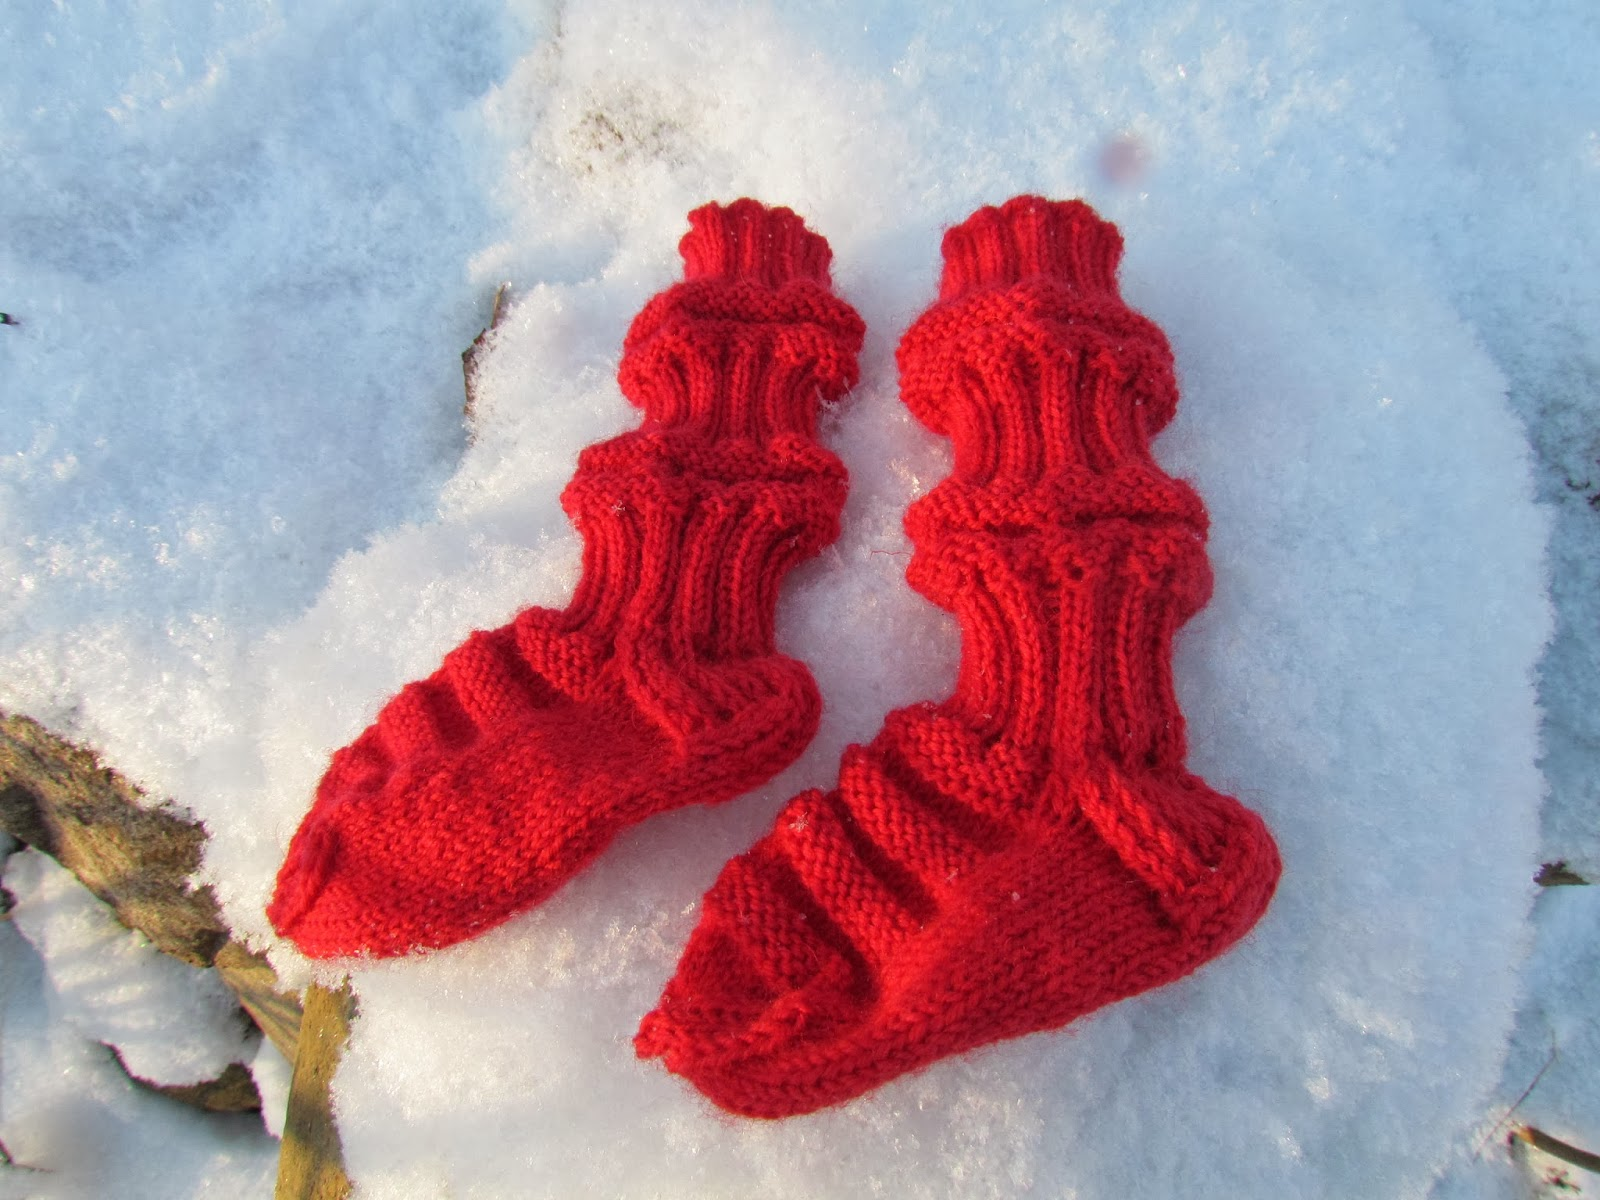 Knitting Slippers For Charity : Kotkarankki train socks and other charity knitting